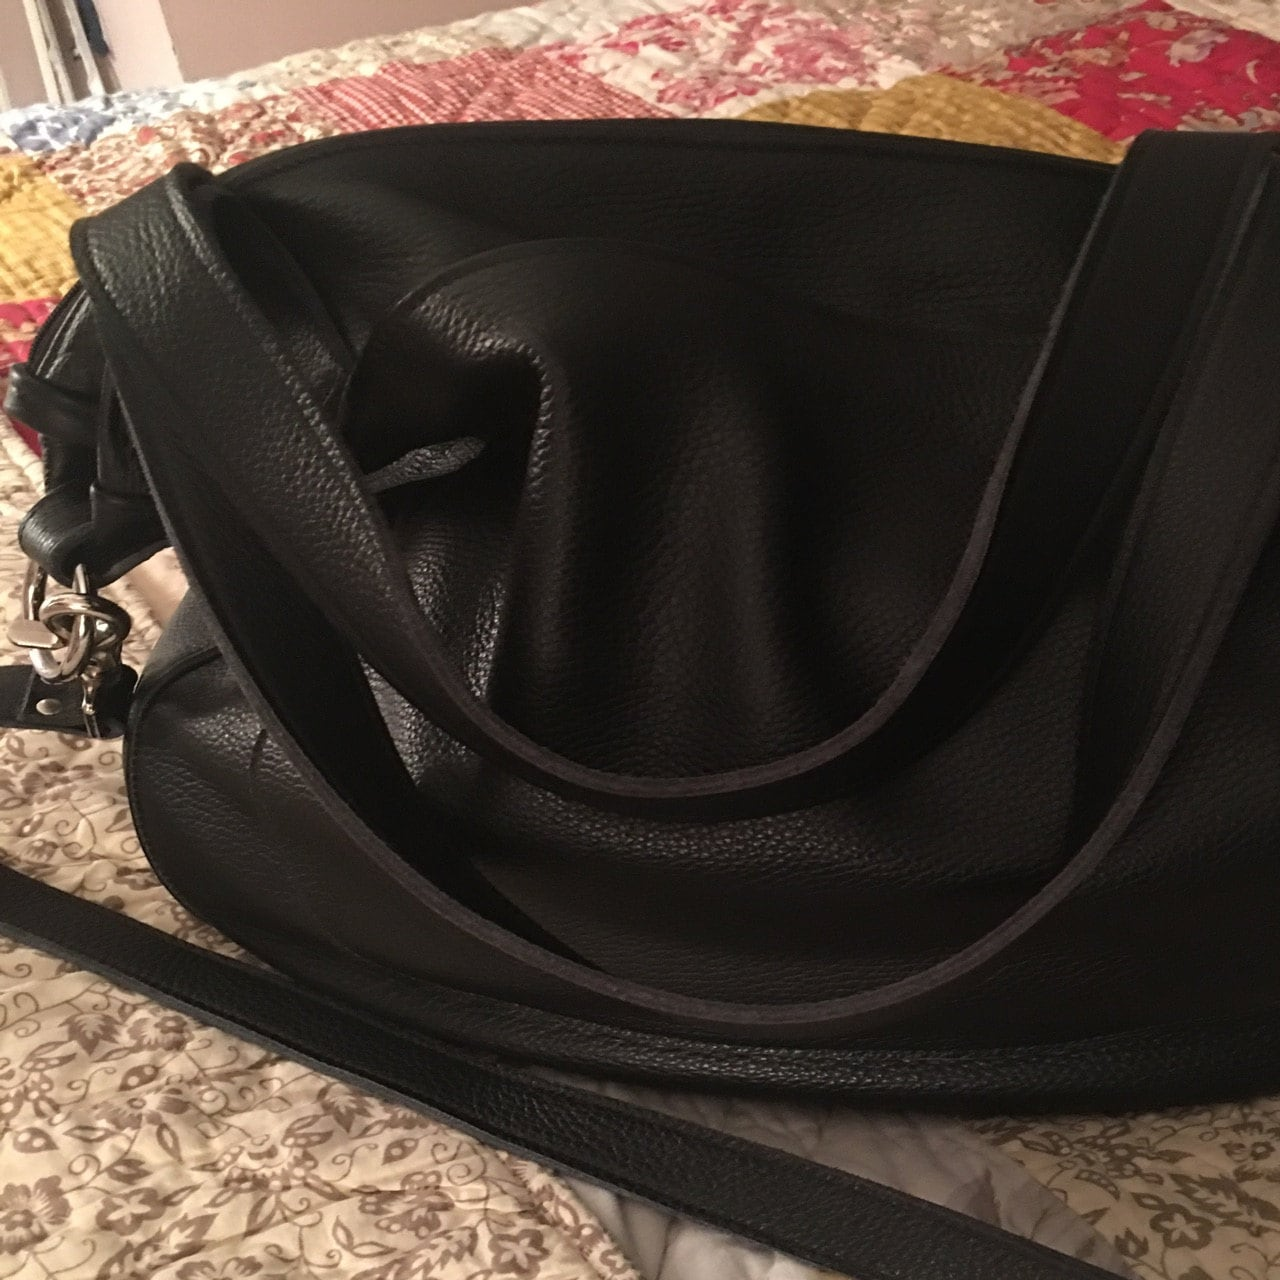 sandi meyer added a photo of their purchase